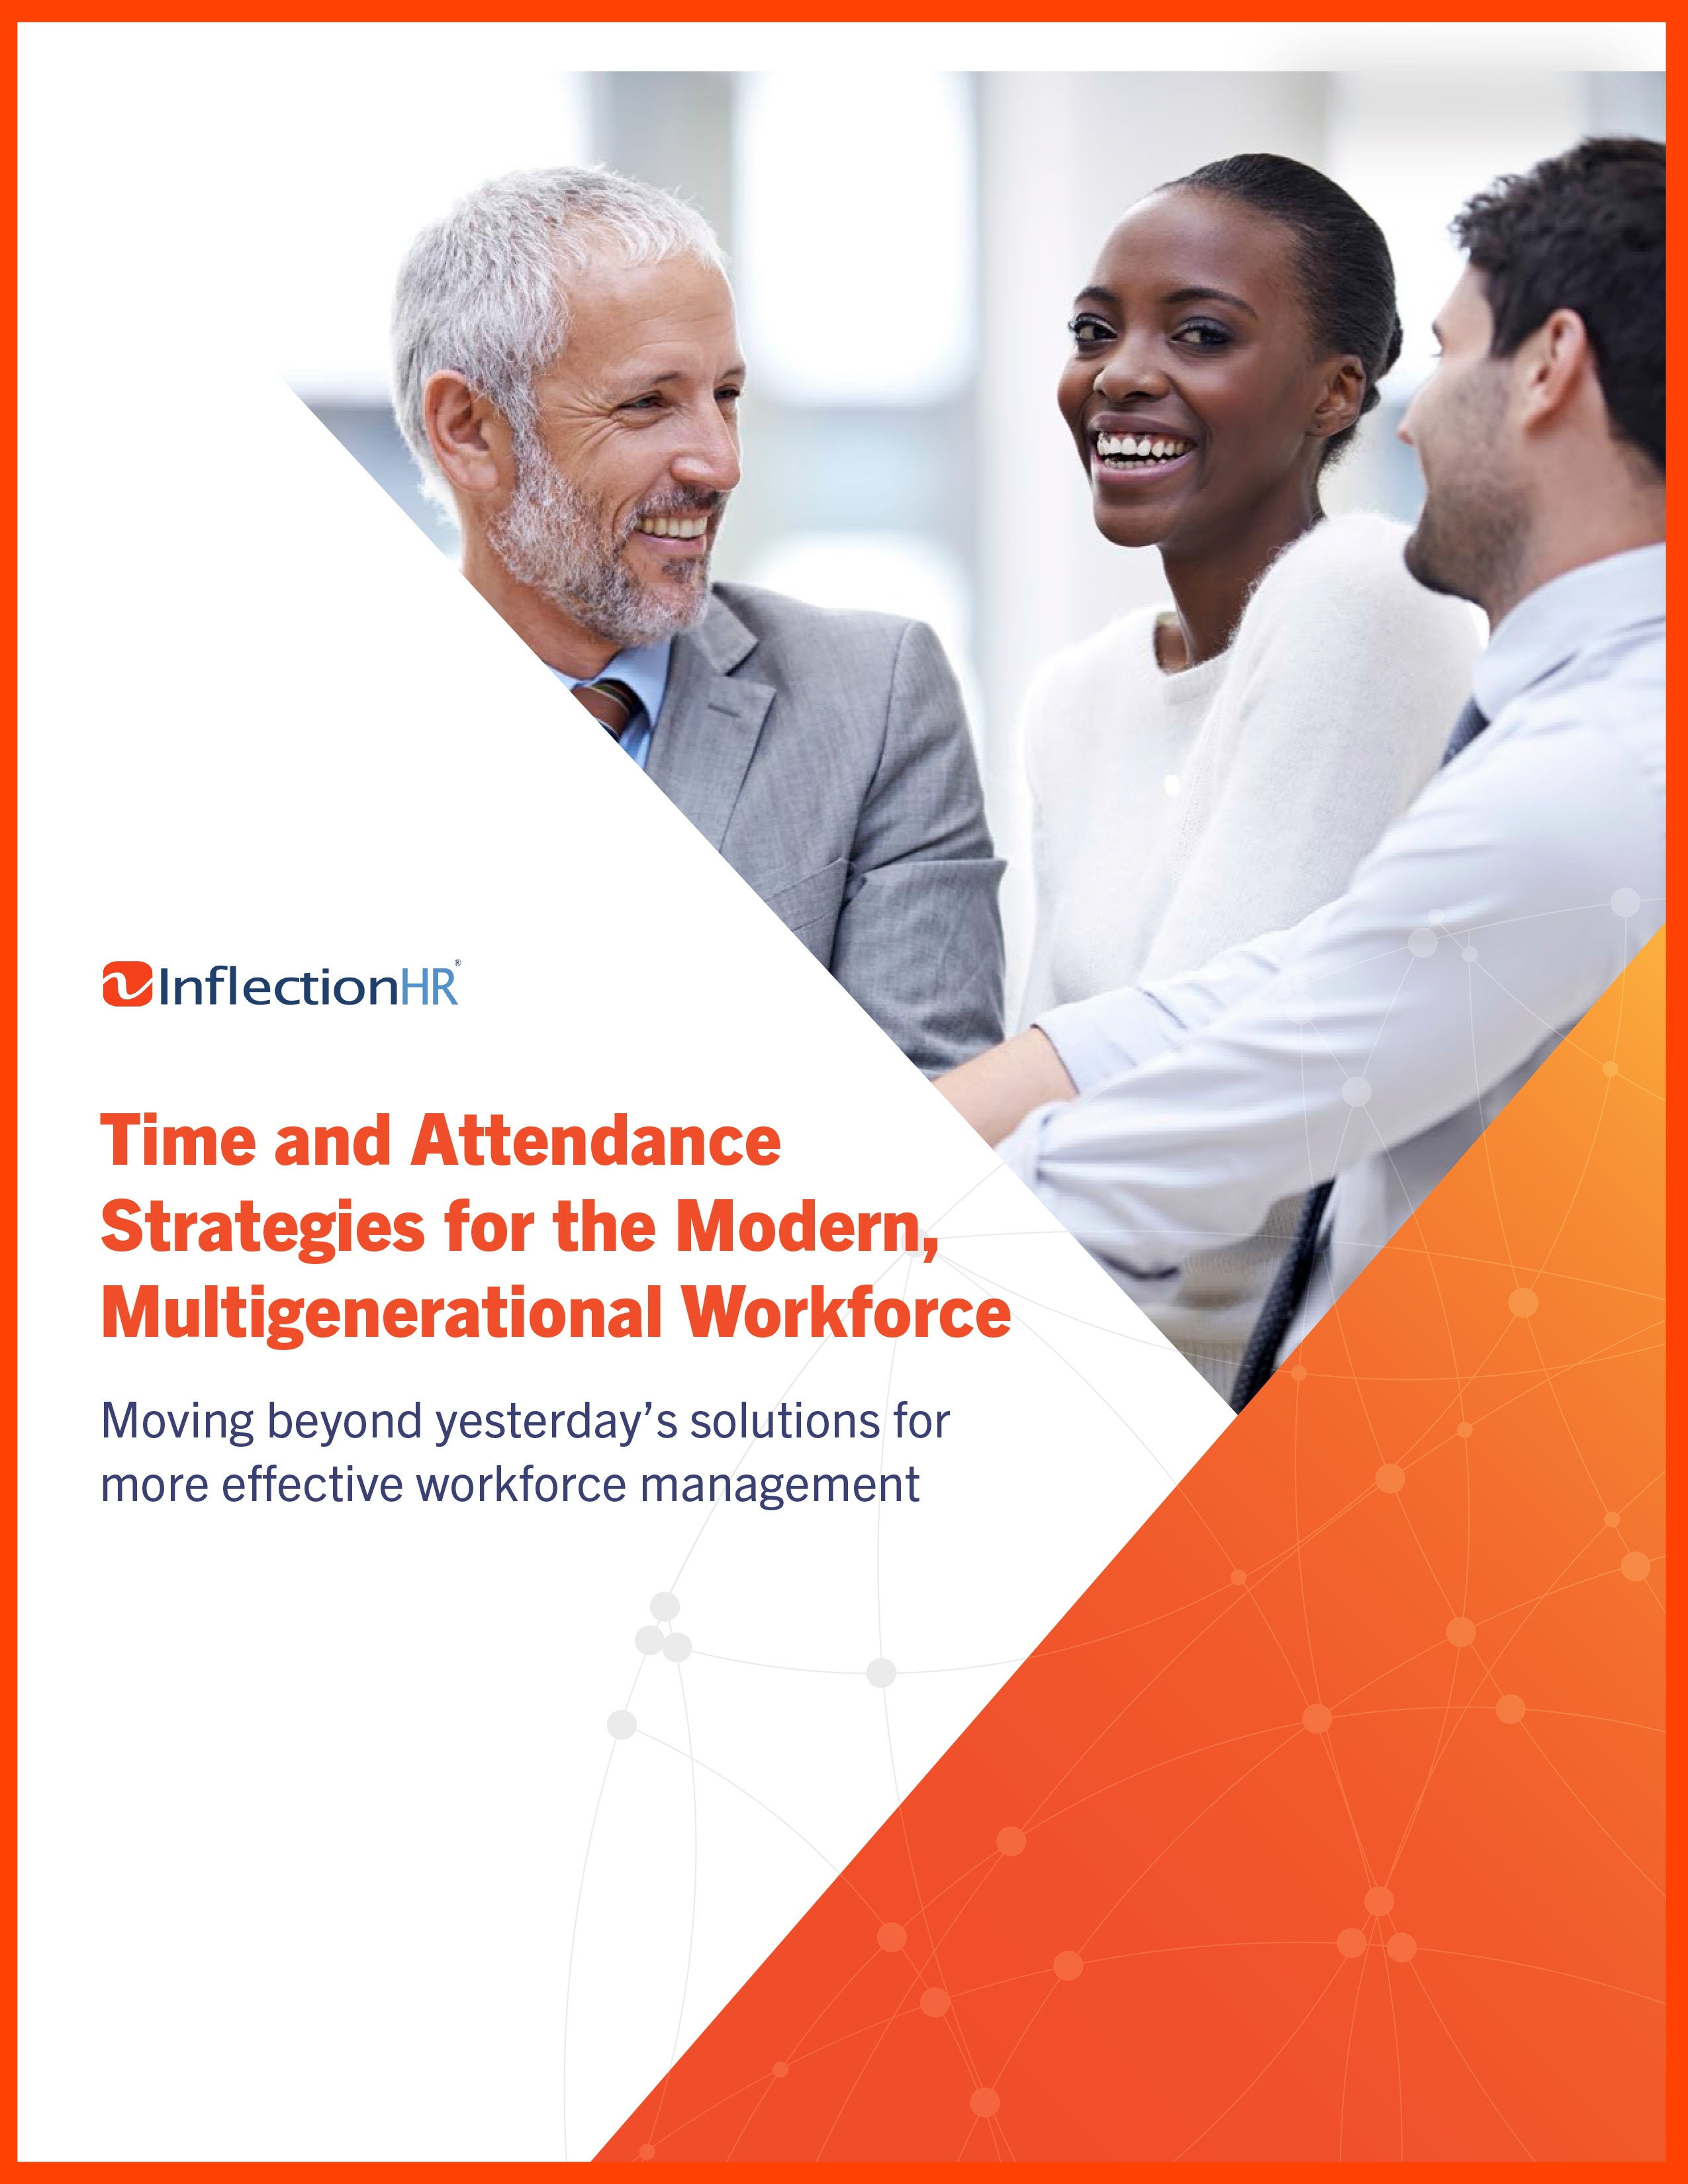 WP-Time and Attendance Strategies for Modern Workforce-1 border (1)